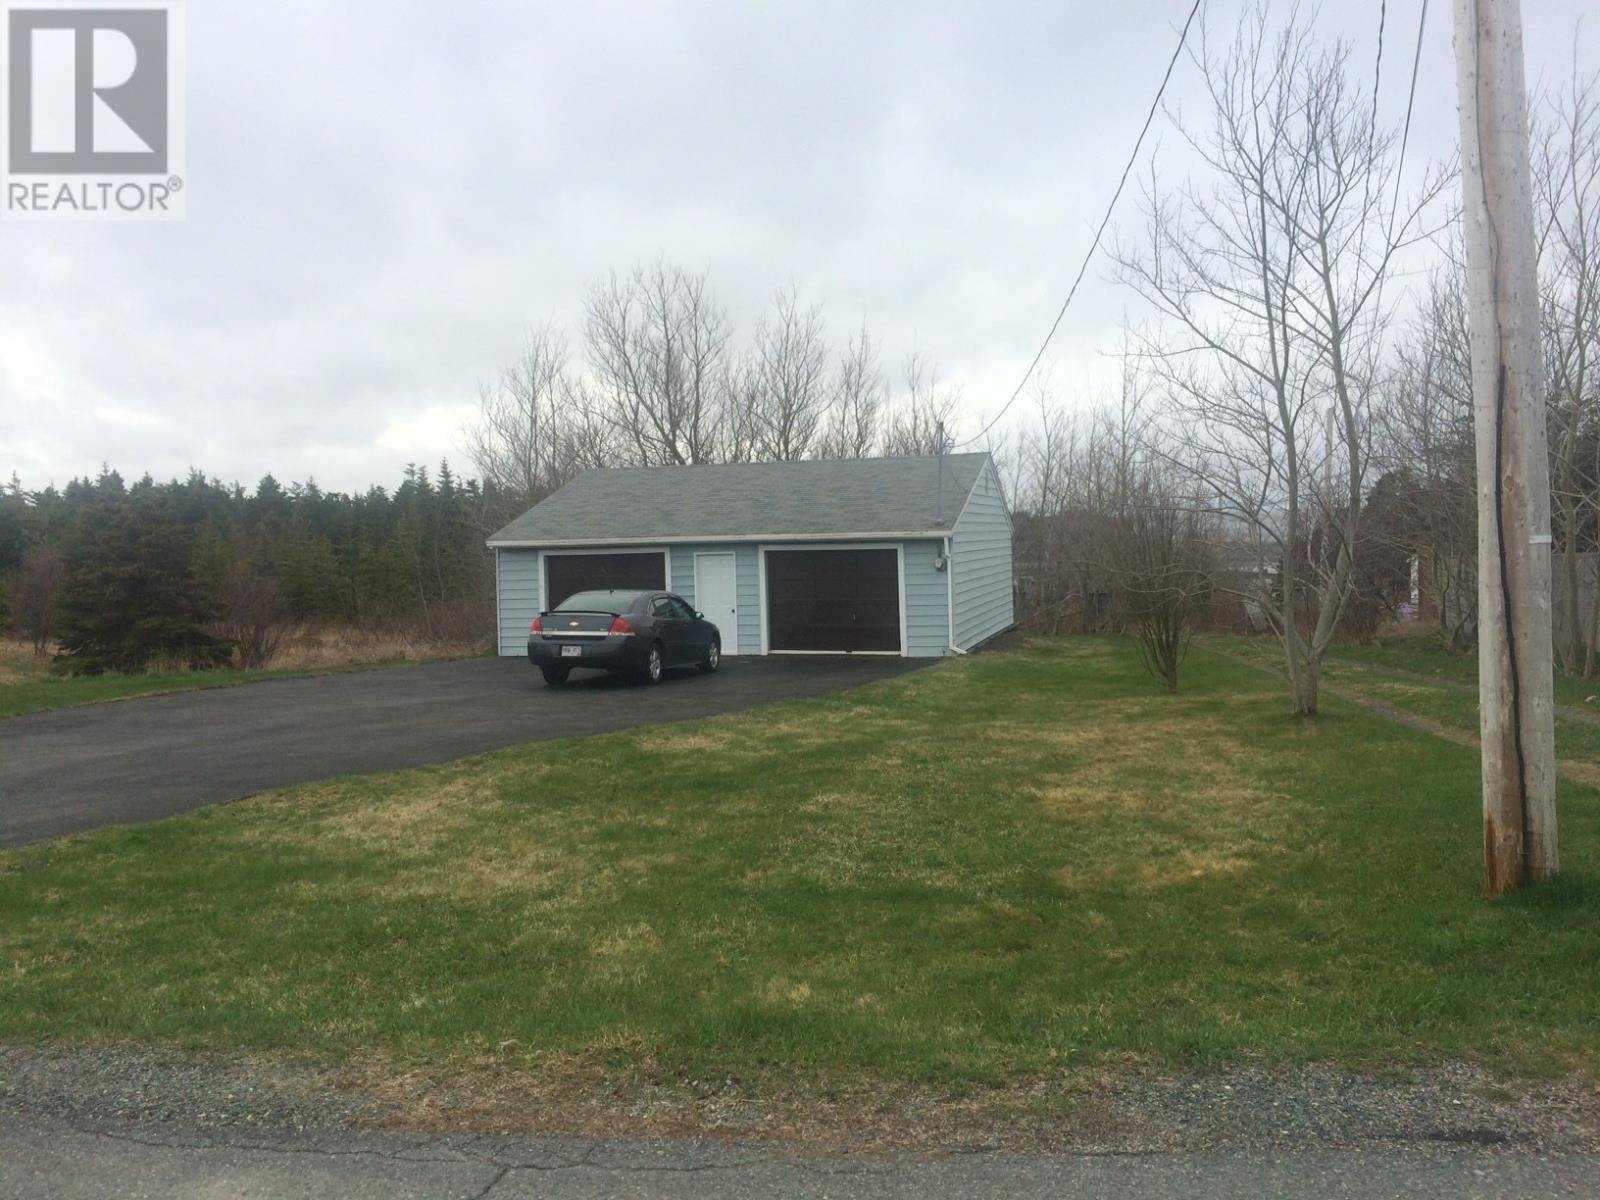 Home for sale at 27 Atkins Rd Conception Bay South Newfoundland - MLS: 1197104